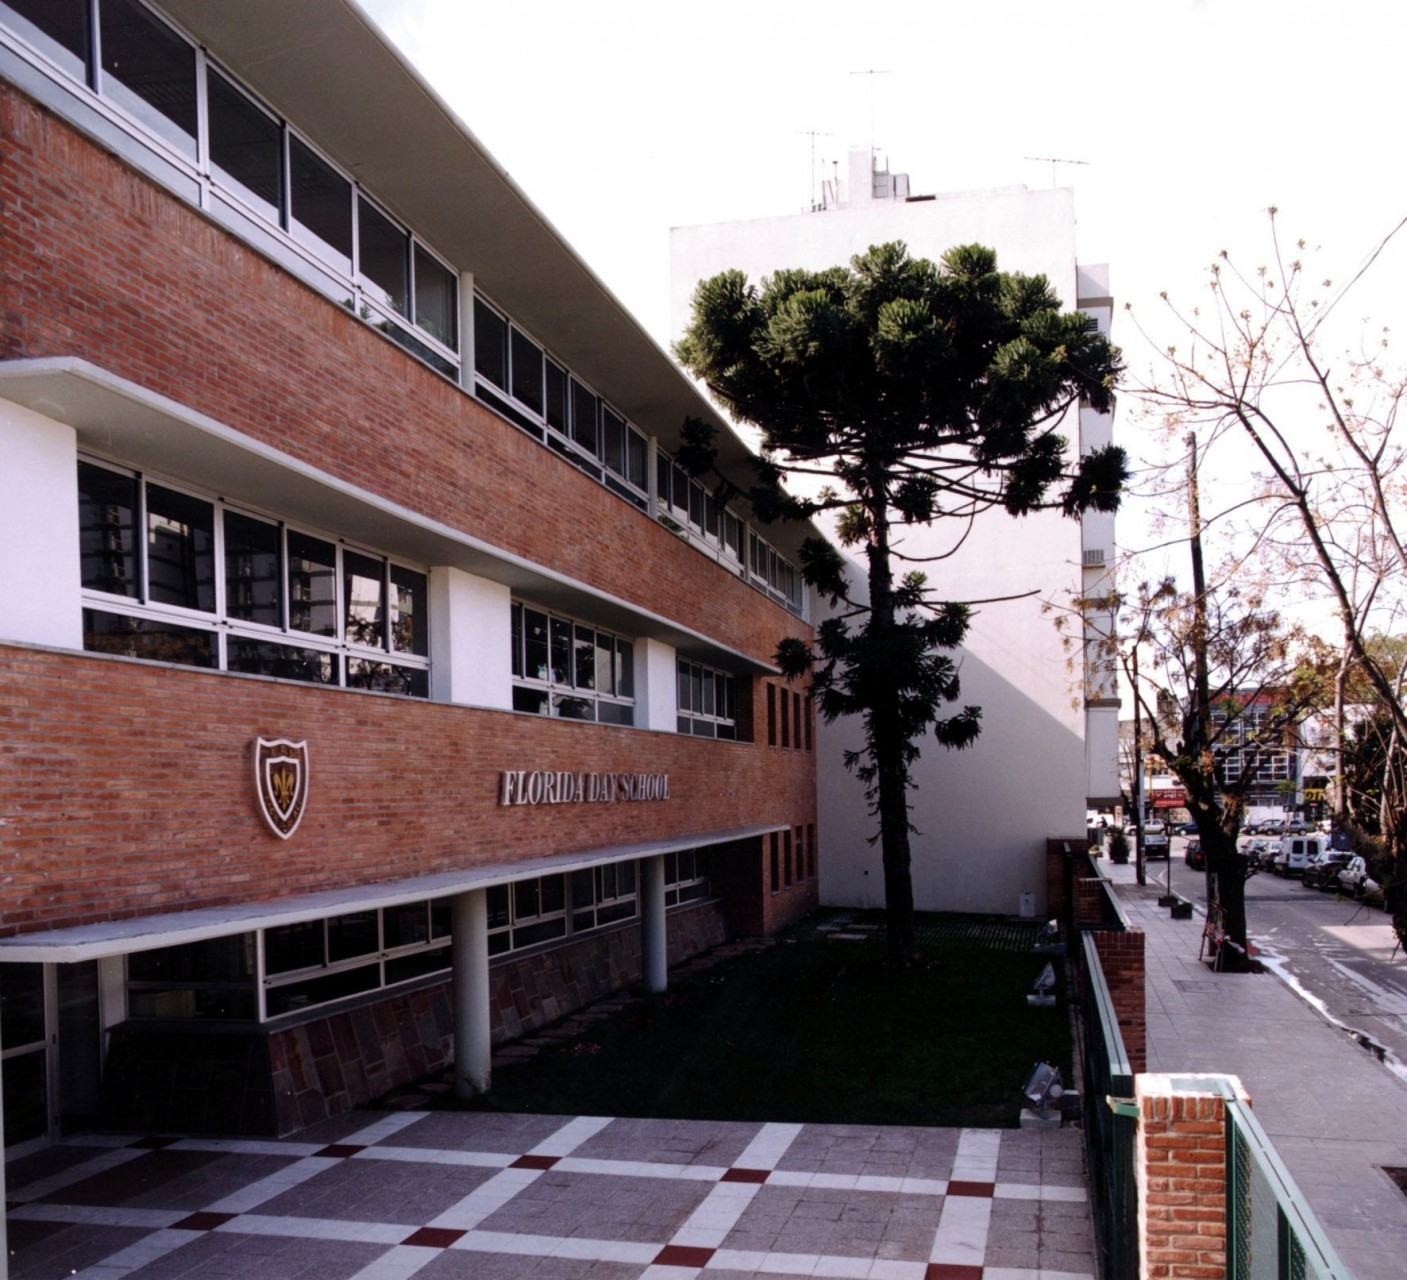 2-florida day school urquiza